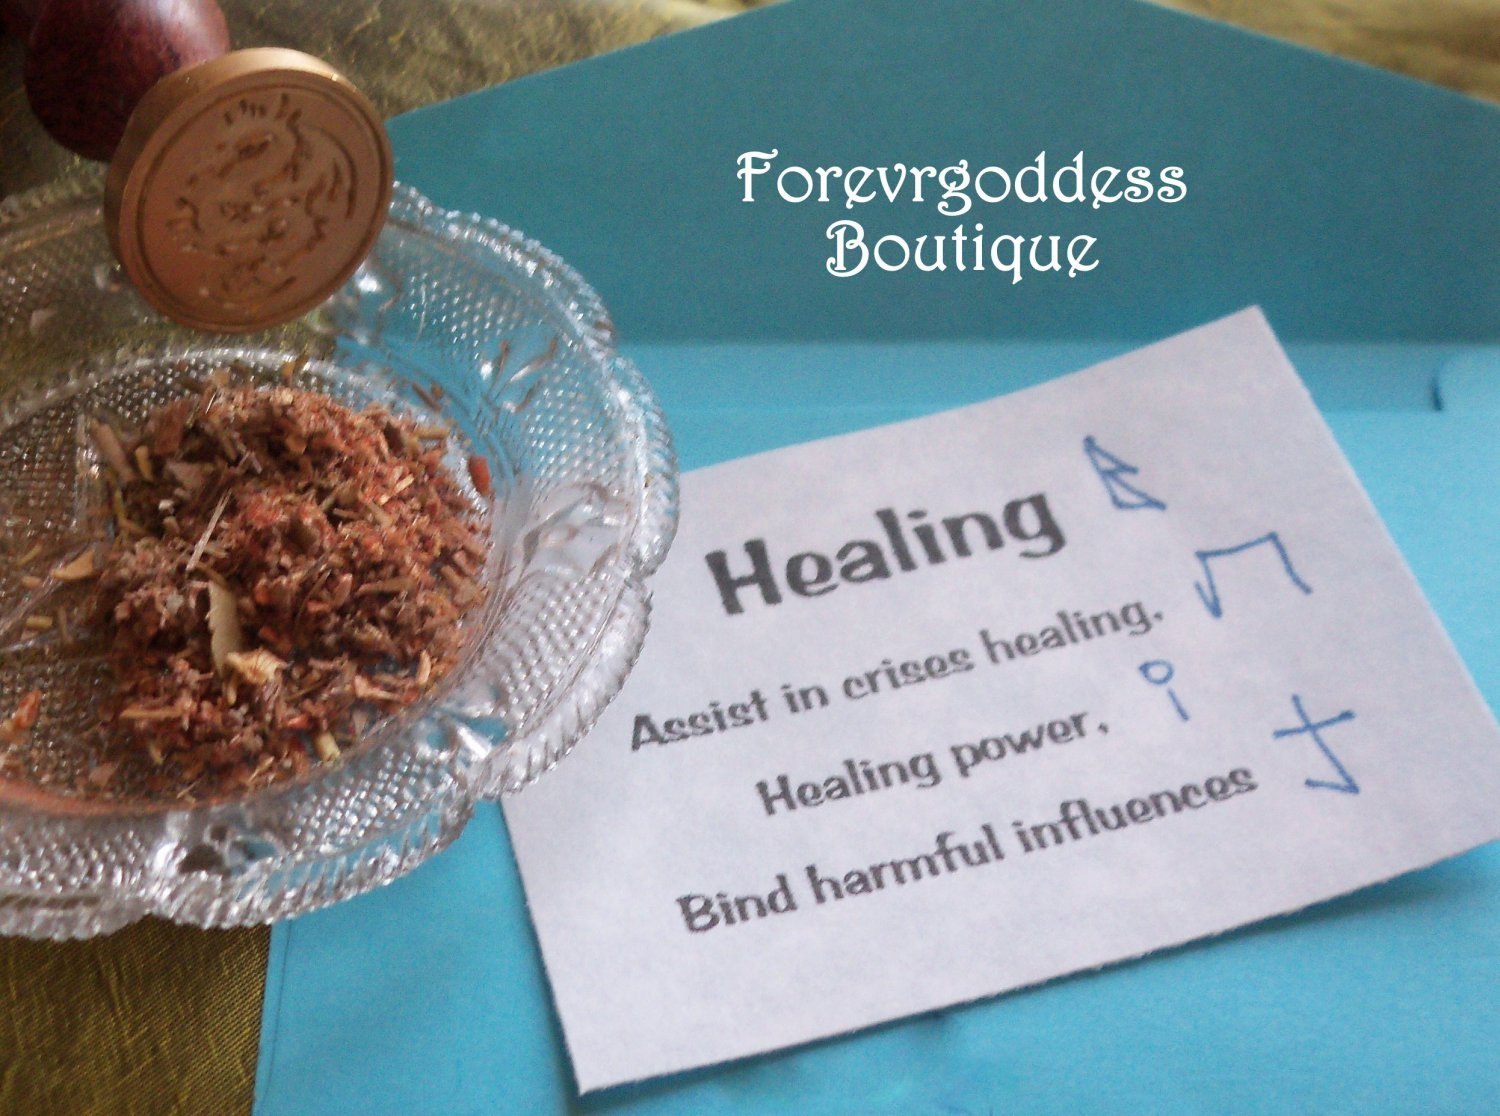 Enchanted offerings: Healing